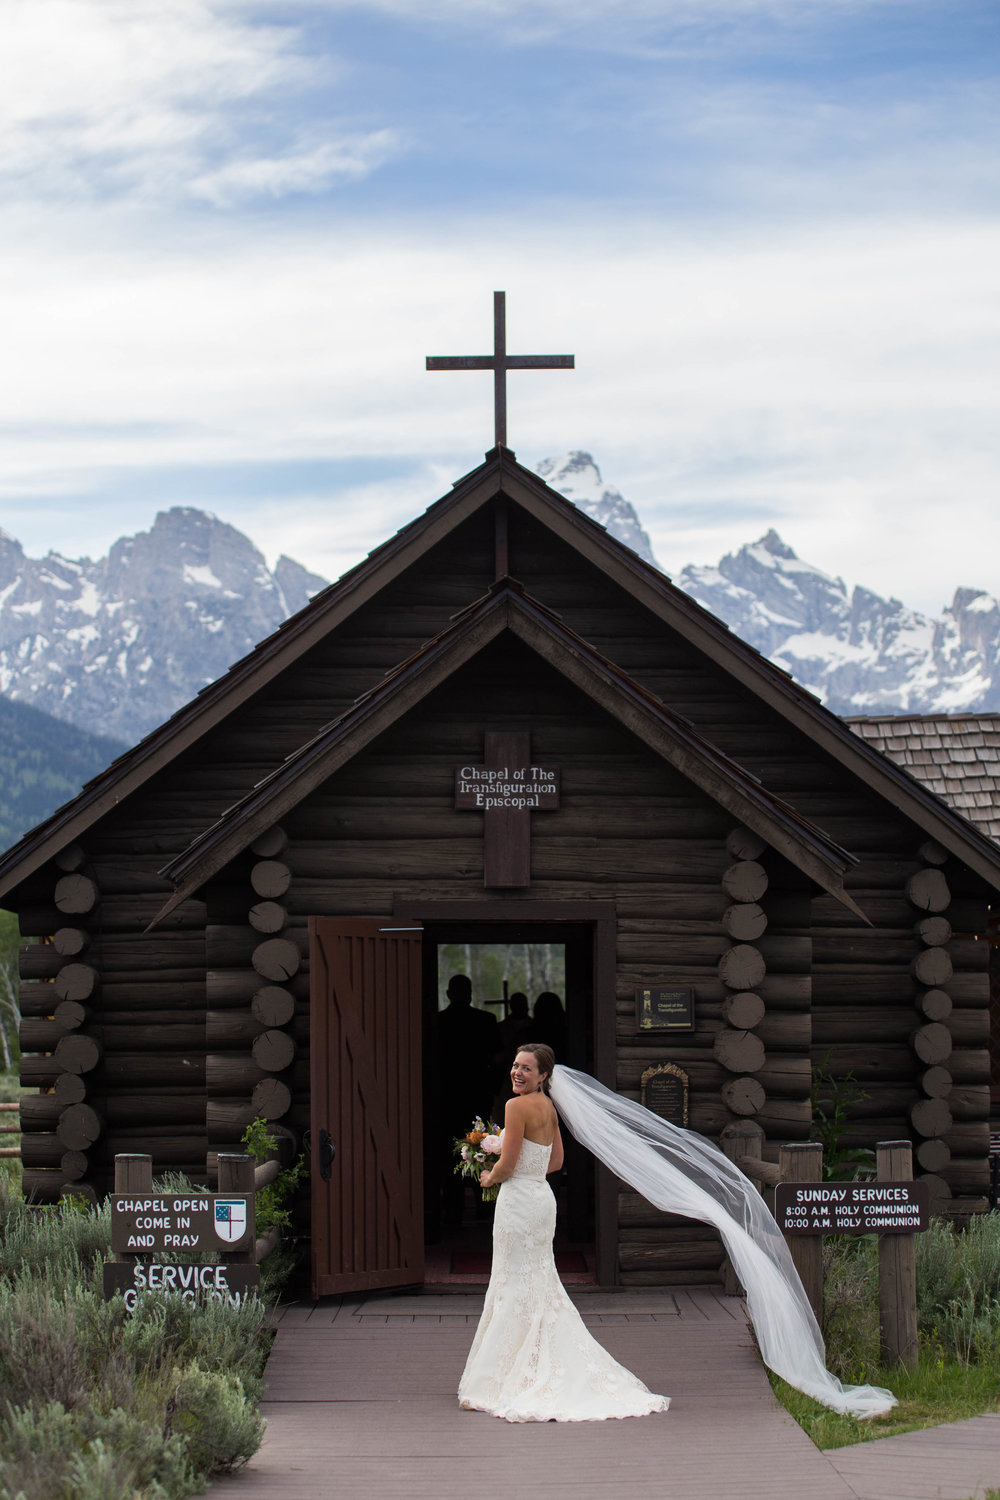 Kendall - Married in Jackson, WyomingPhoto by Sarah Averill Photography